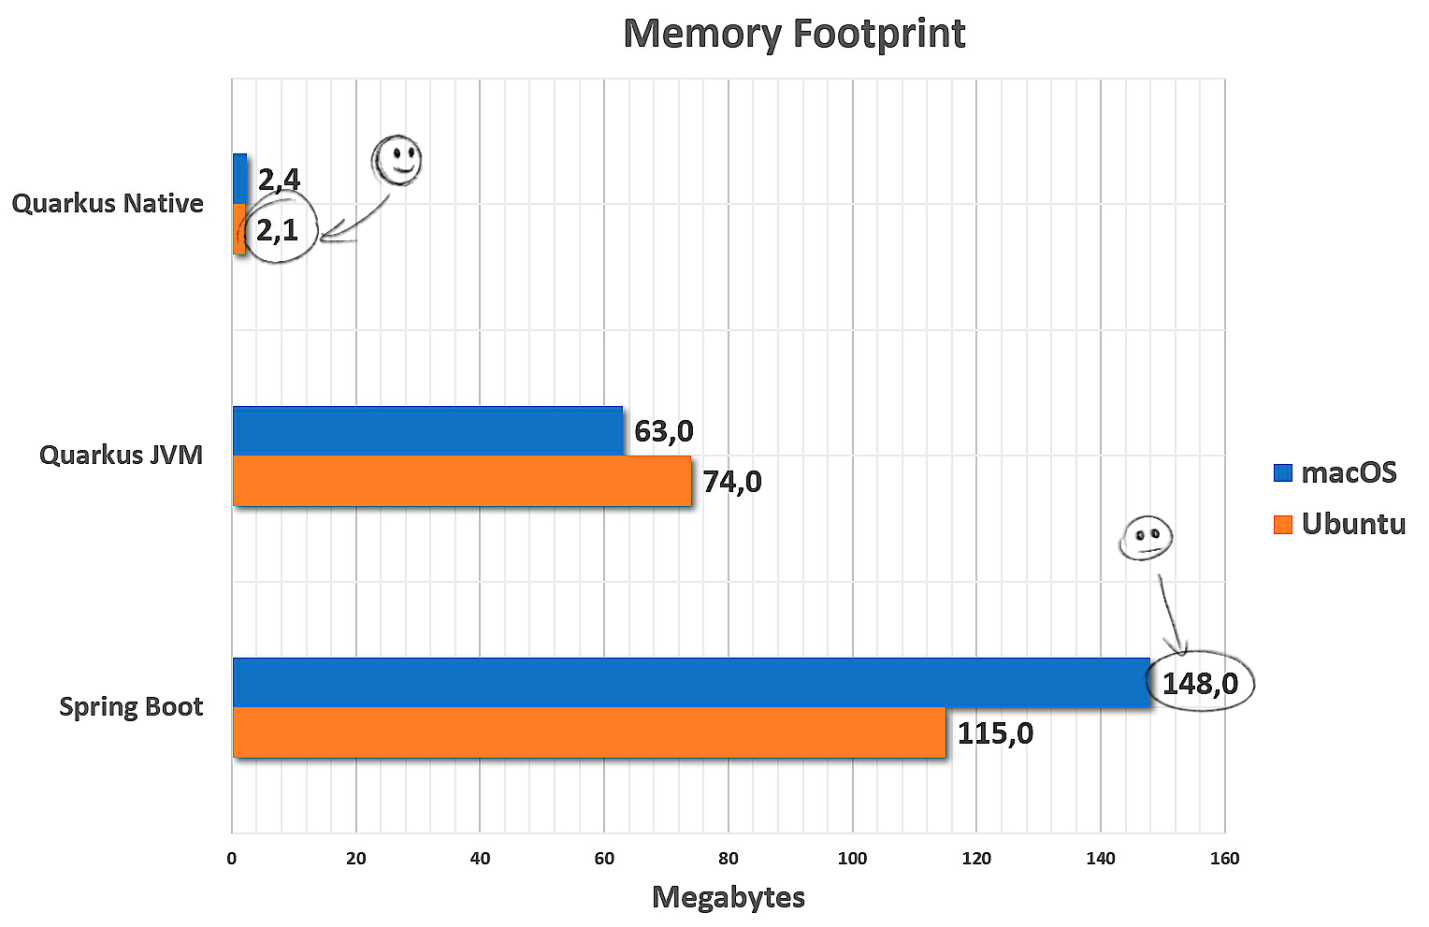 memory footprint graph